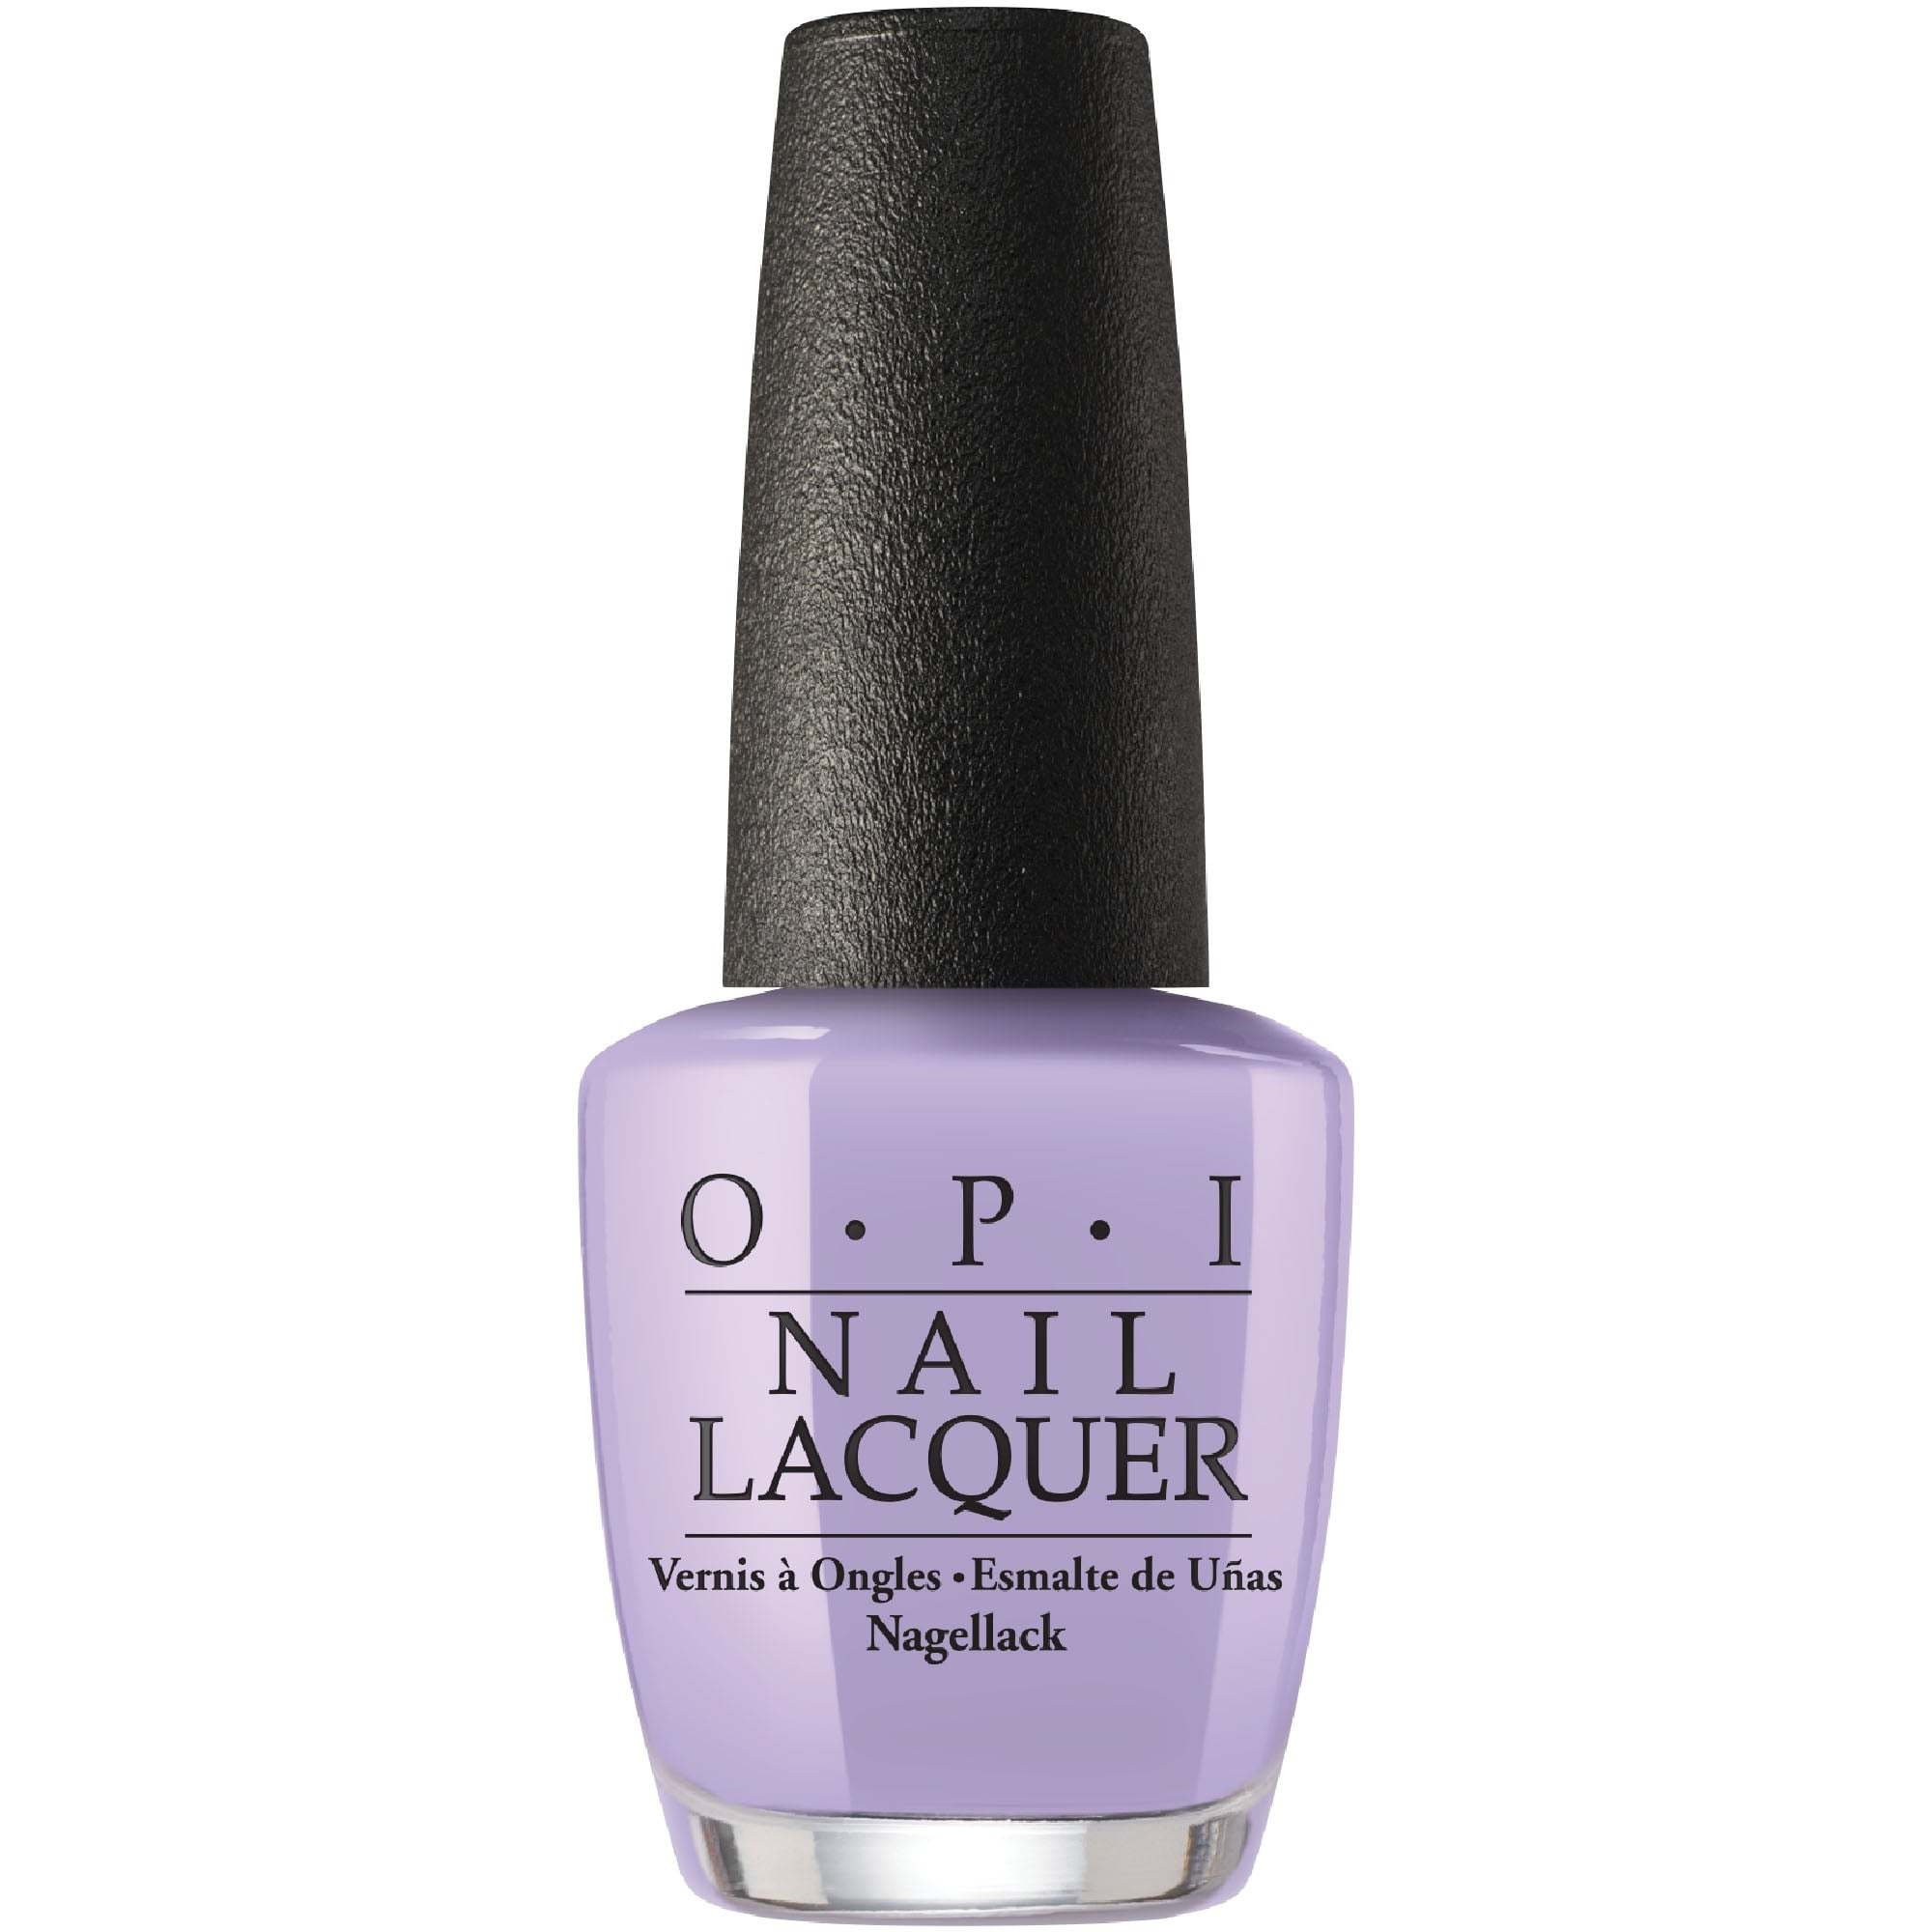 opi-fiji-nail-polish-collection-2017-polly-want-a-lacquer-nl-f83-15ml-p19544-83924_zoom.jpg